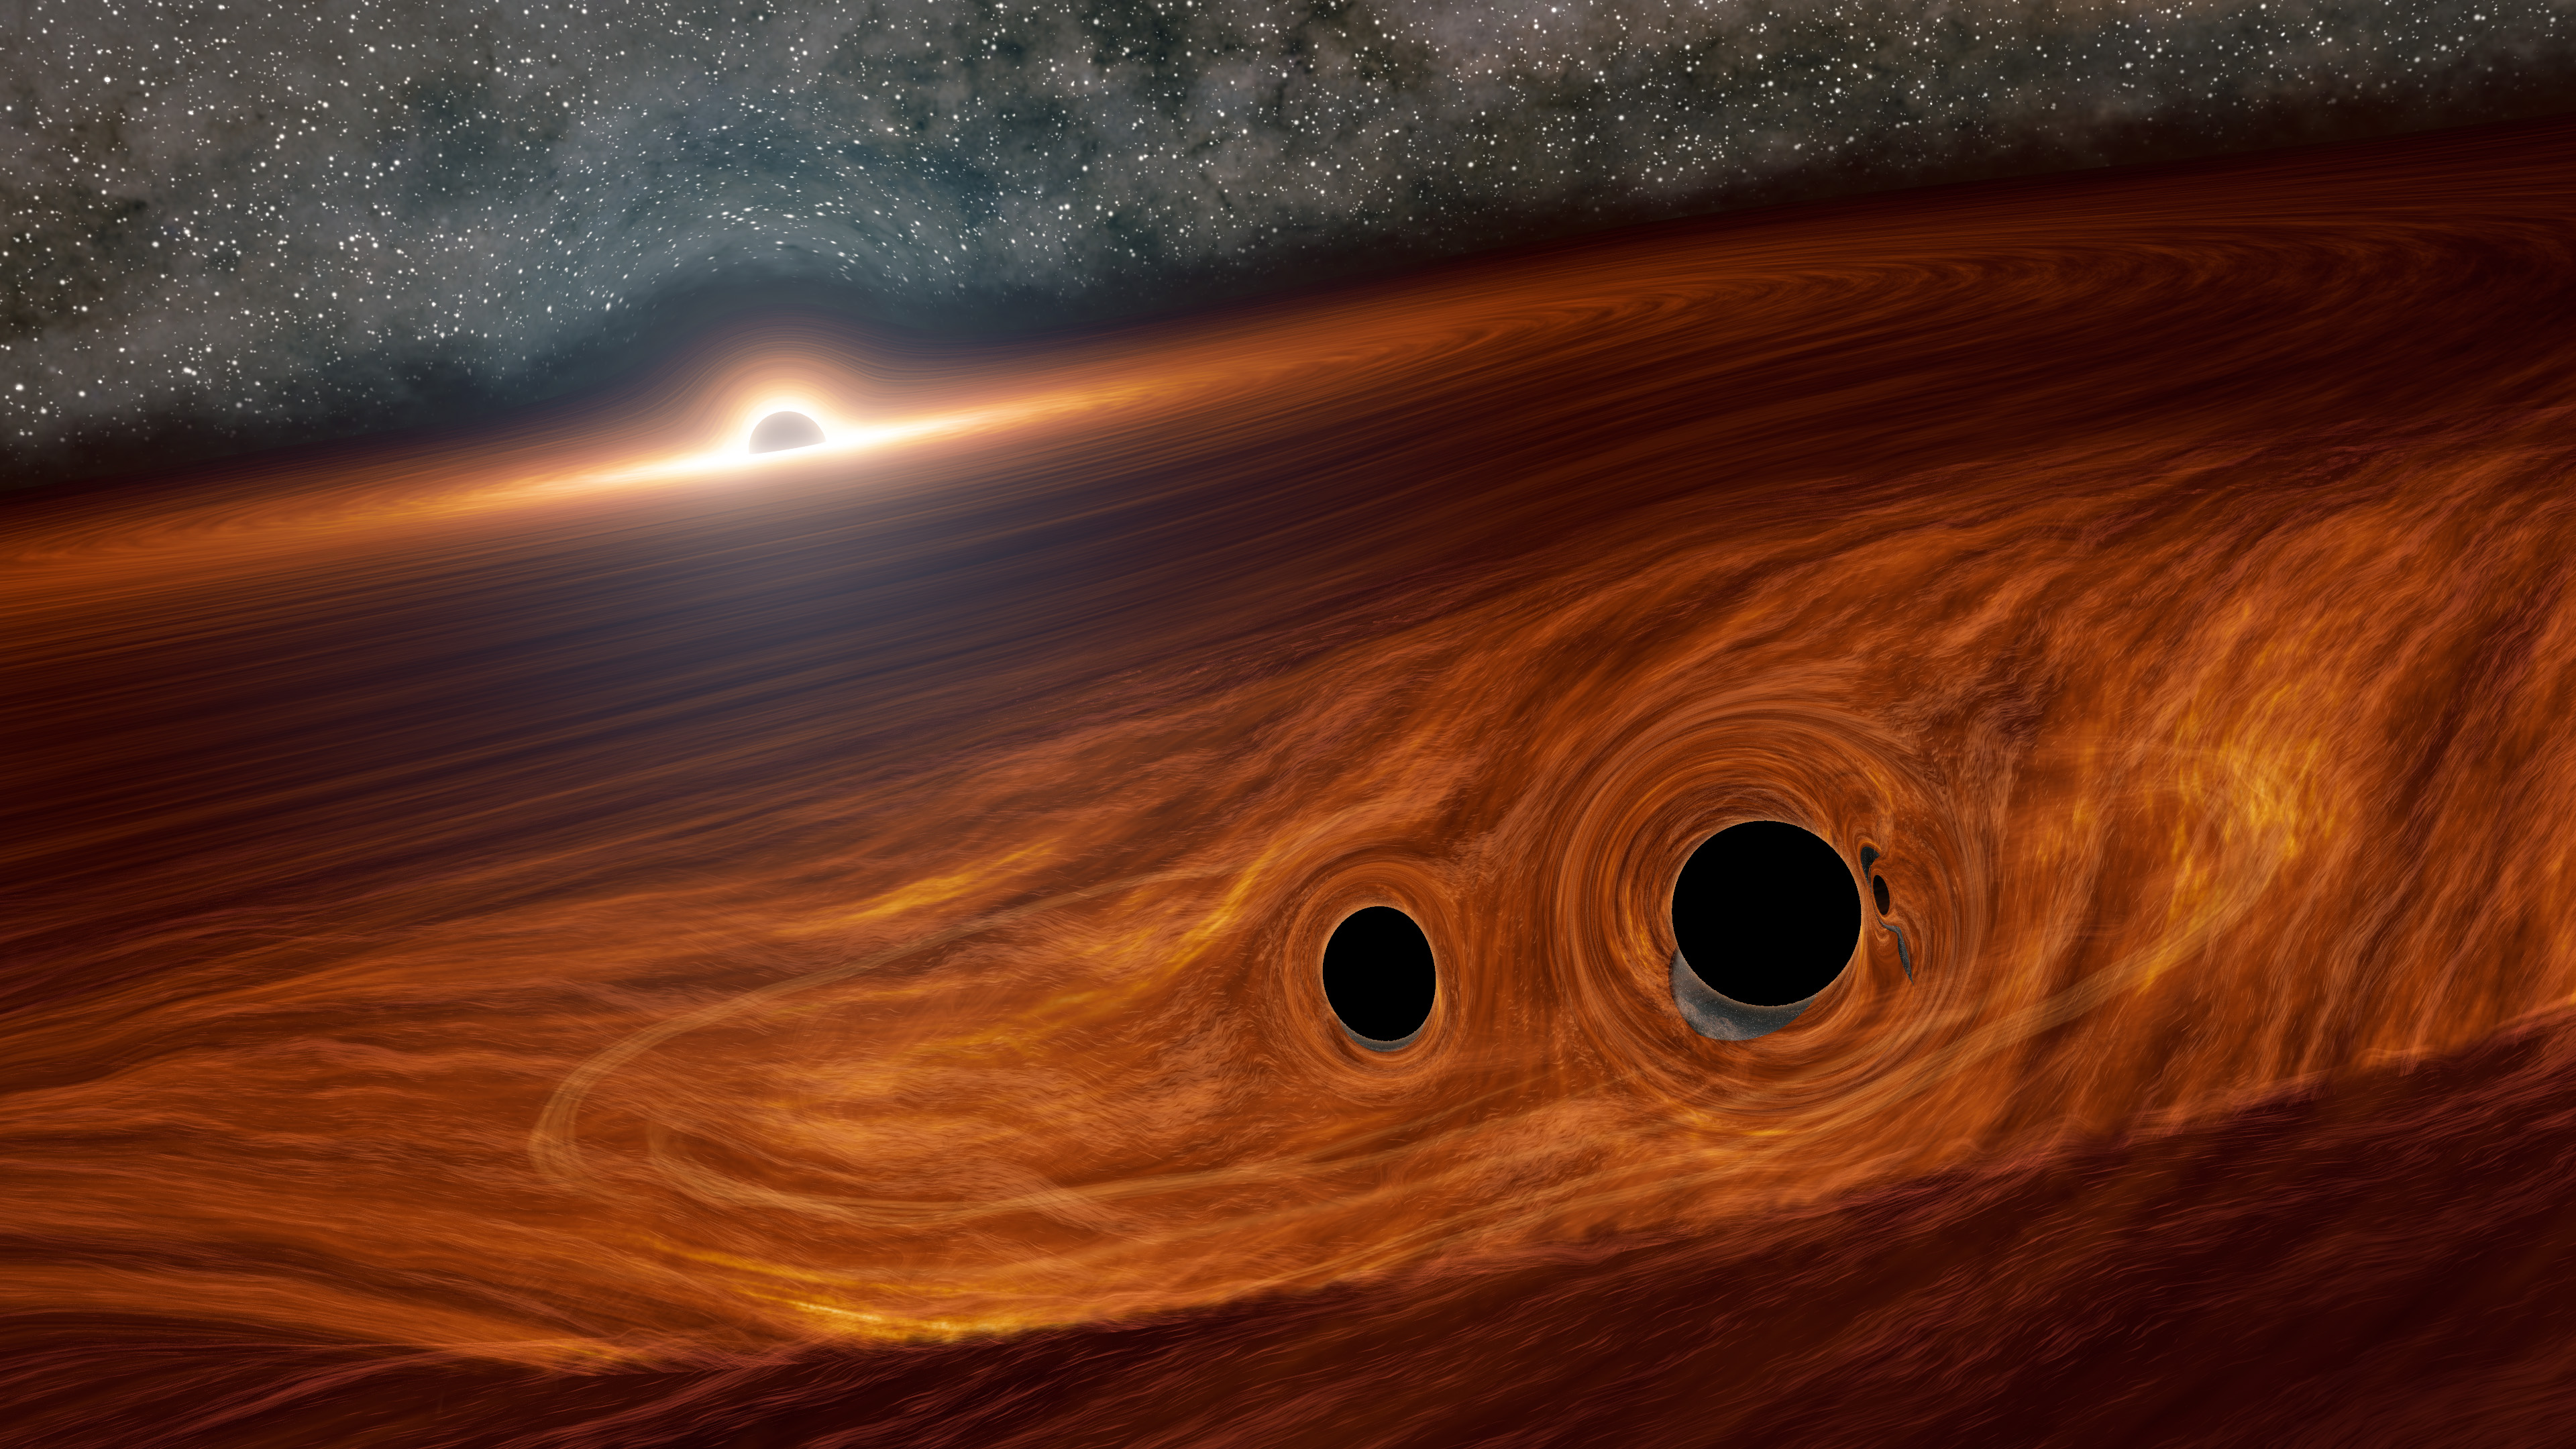 Astronomers may have detected light from colliding black holes for the first time